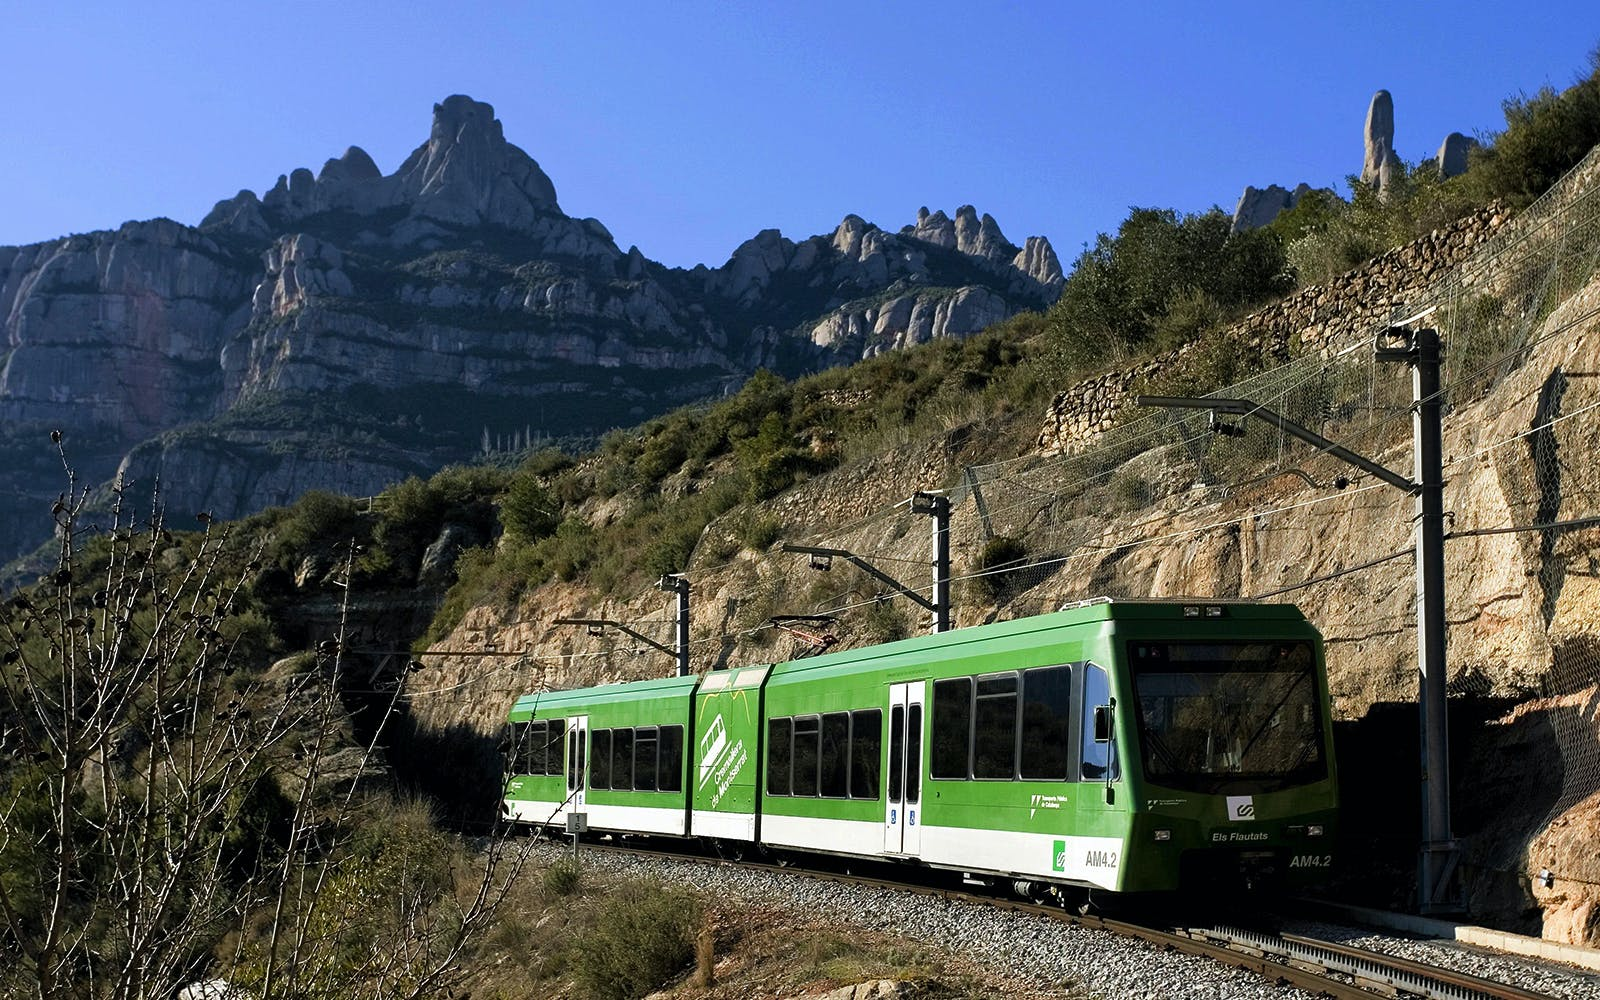 Montserrat from Barcelona with Train + Rackrailway